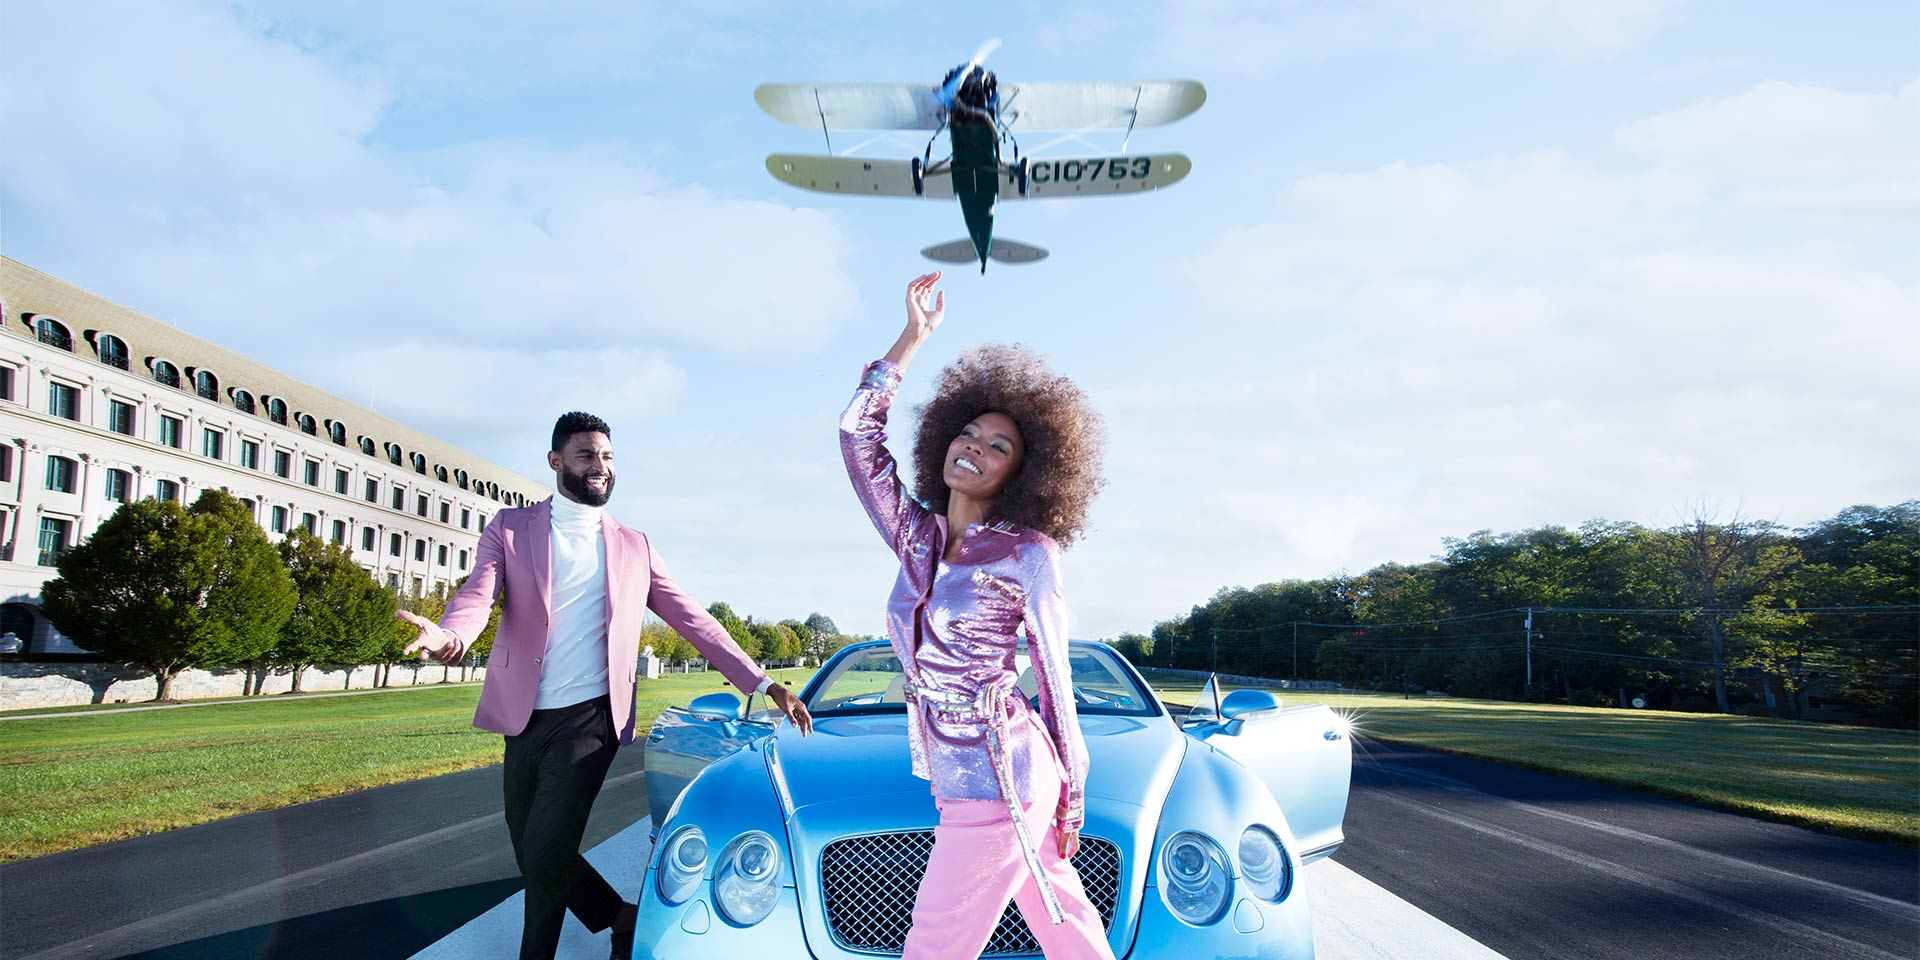 A couple dressed in pink attire walking near a blue car with a airplane flying above them.